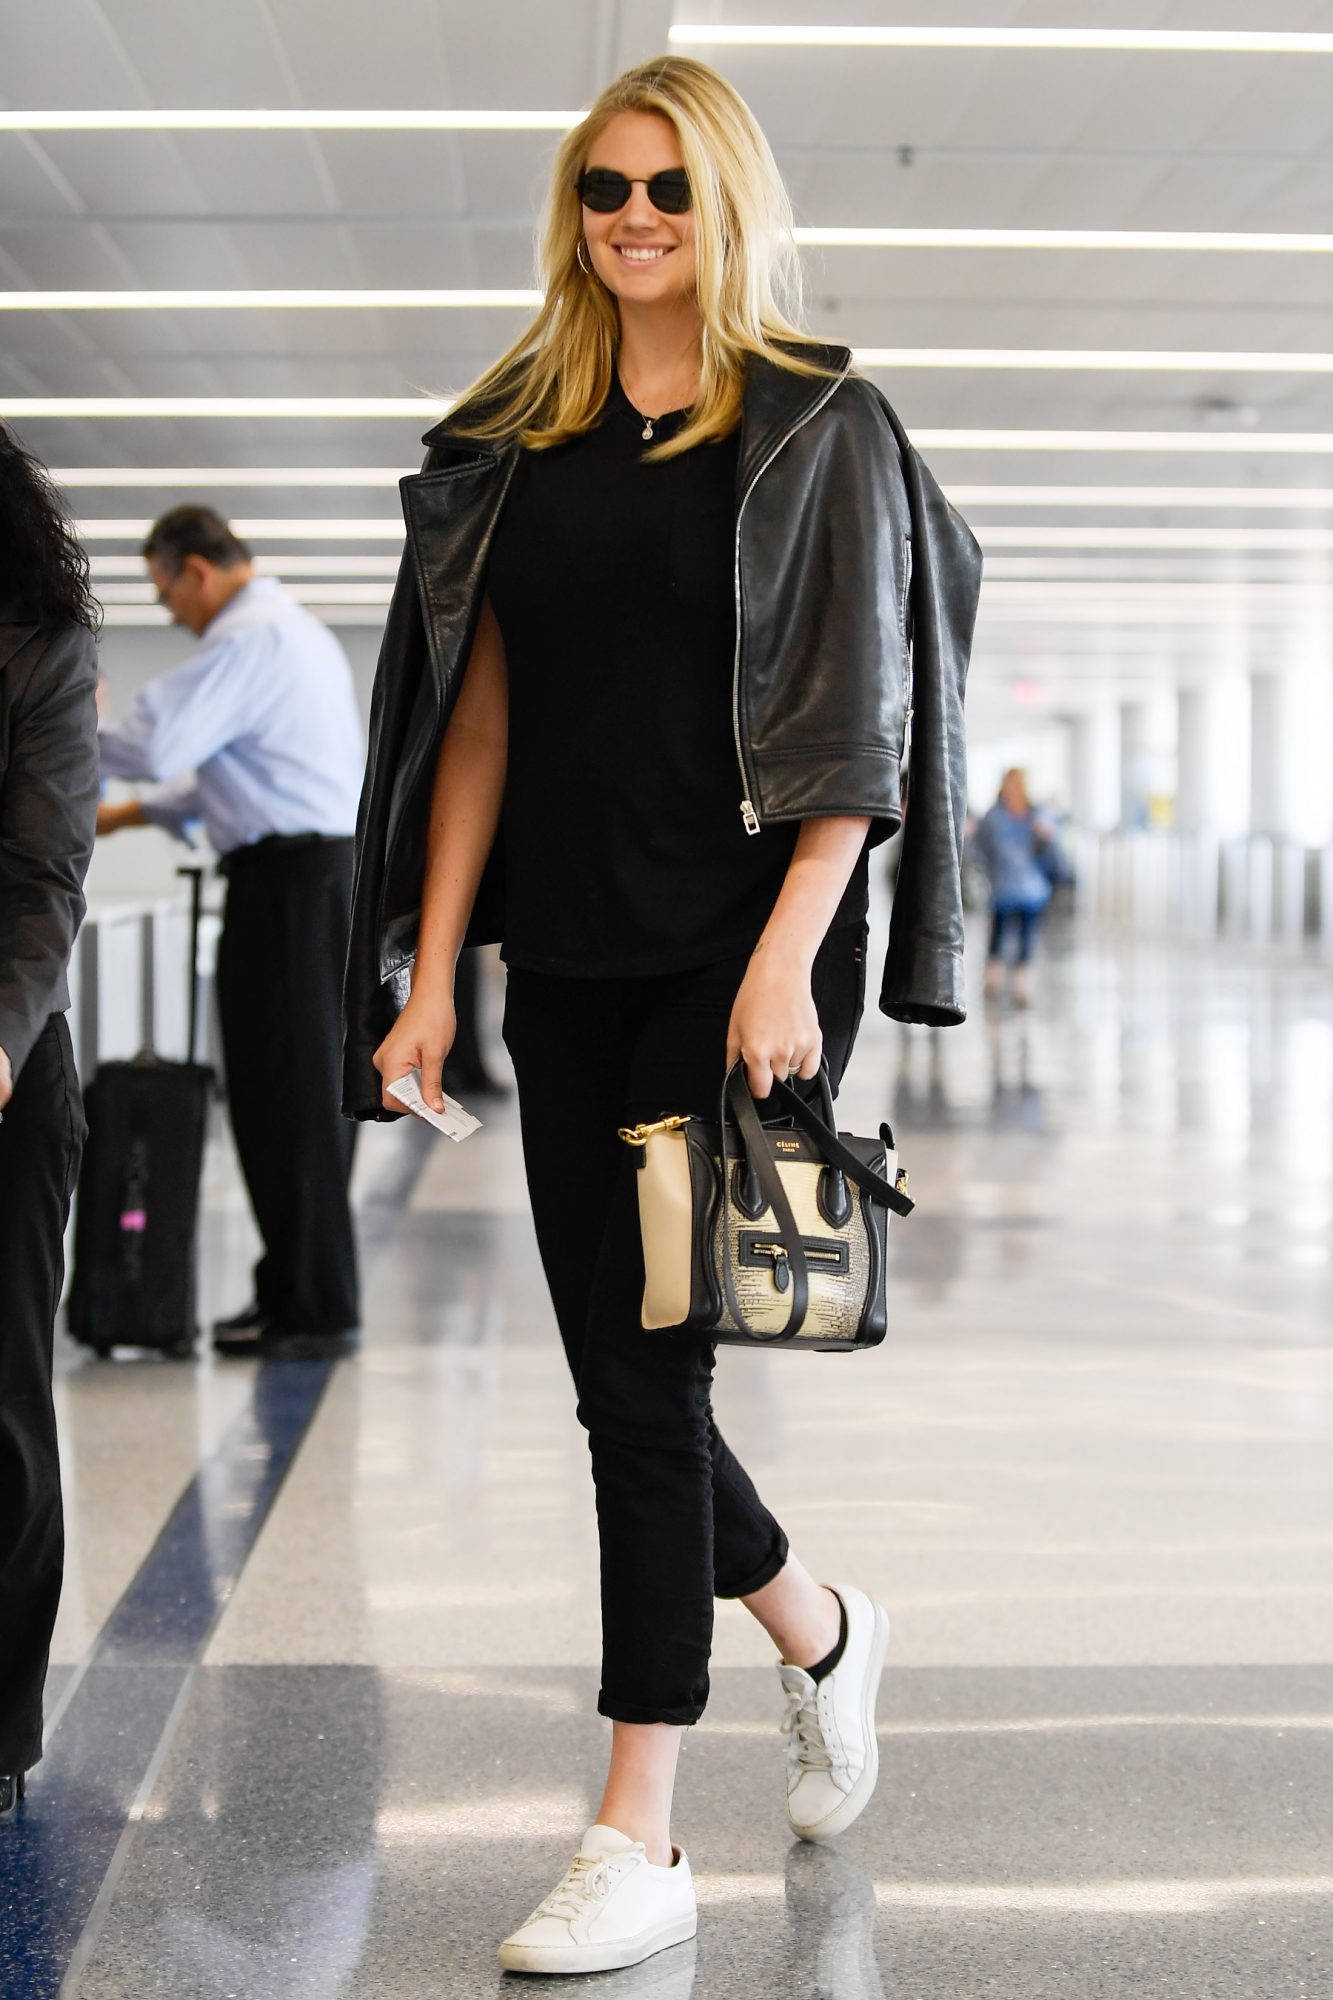 EXCLUSIVE: Kate Upton departs from LAX